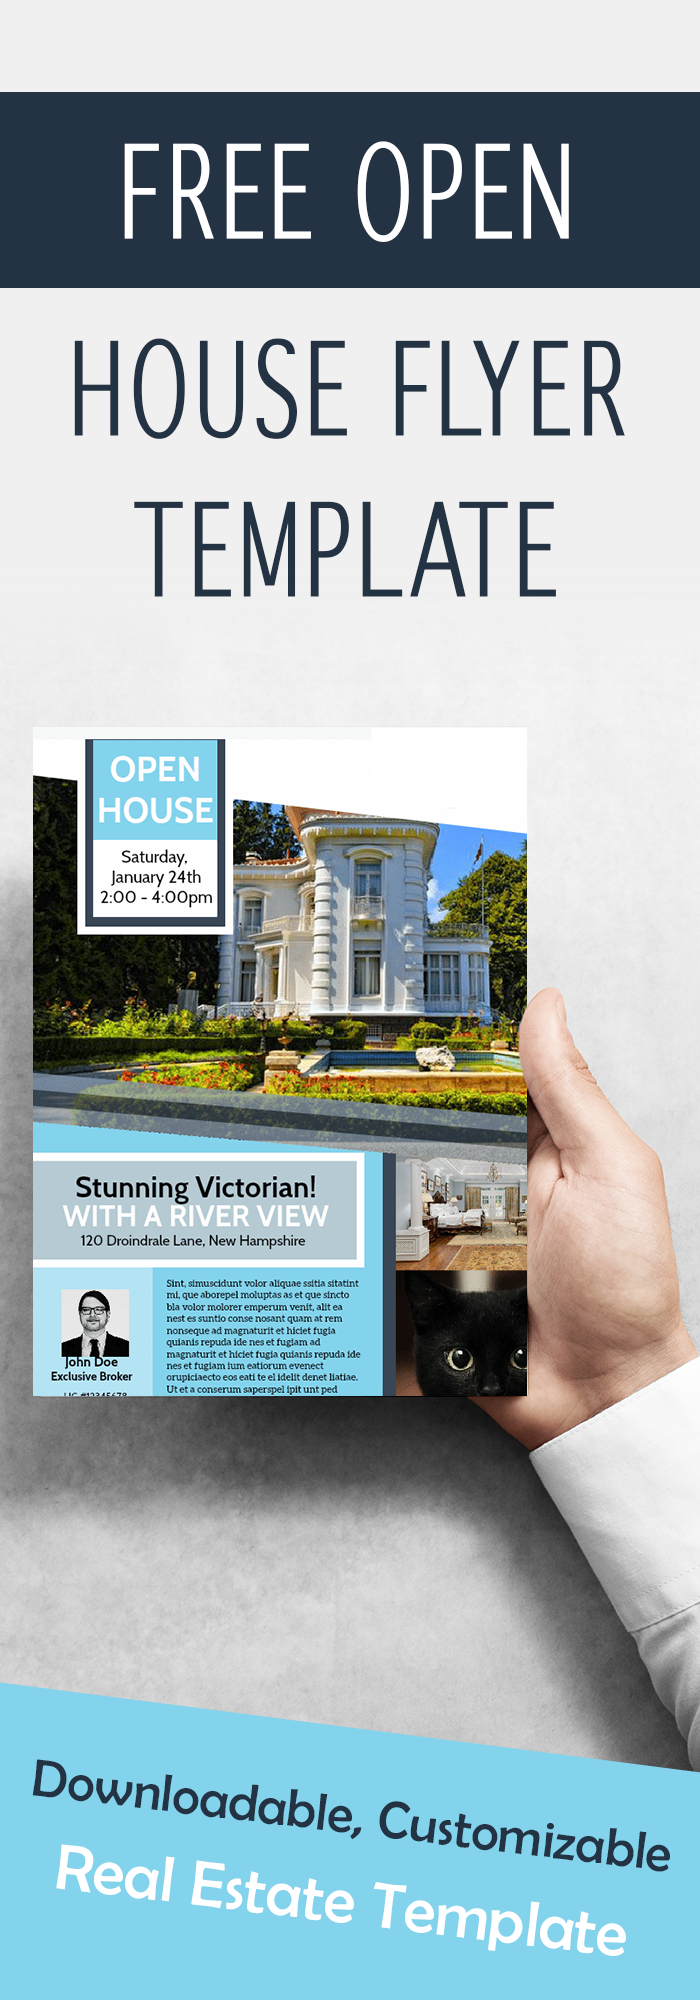 Free Open House Flyer Template Gallery Template Design Ideas - Open house ad template